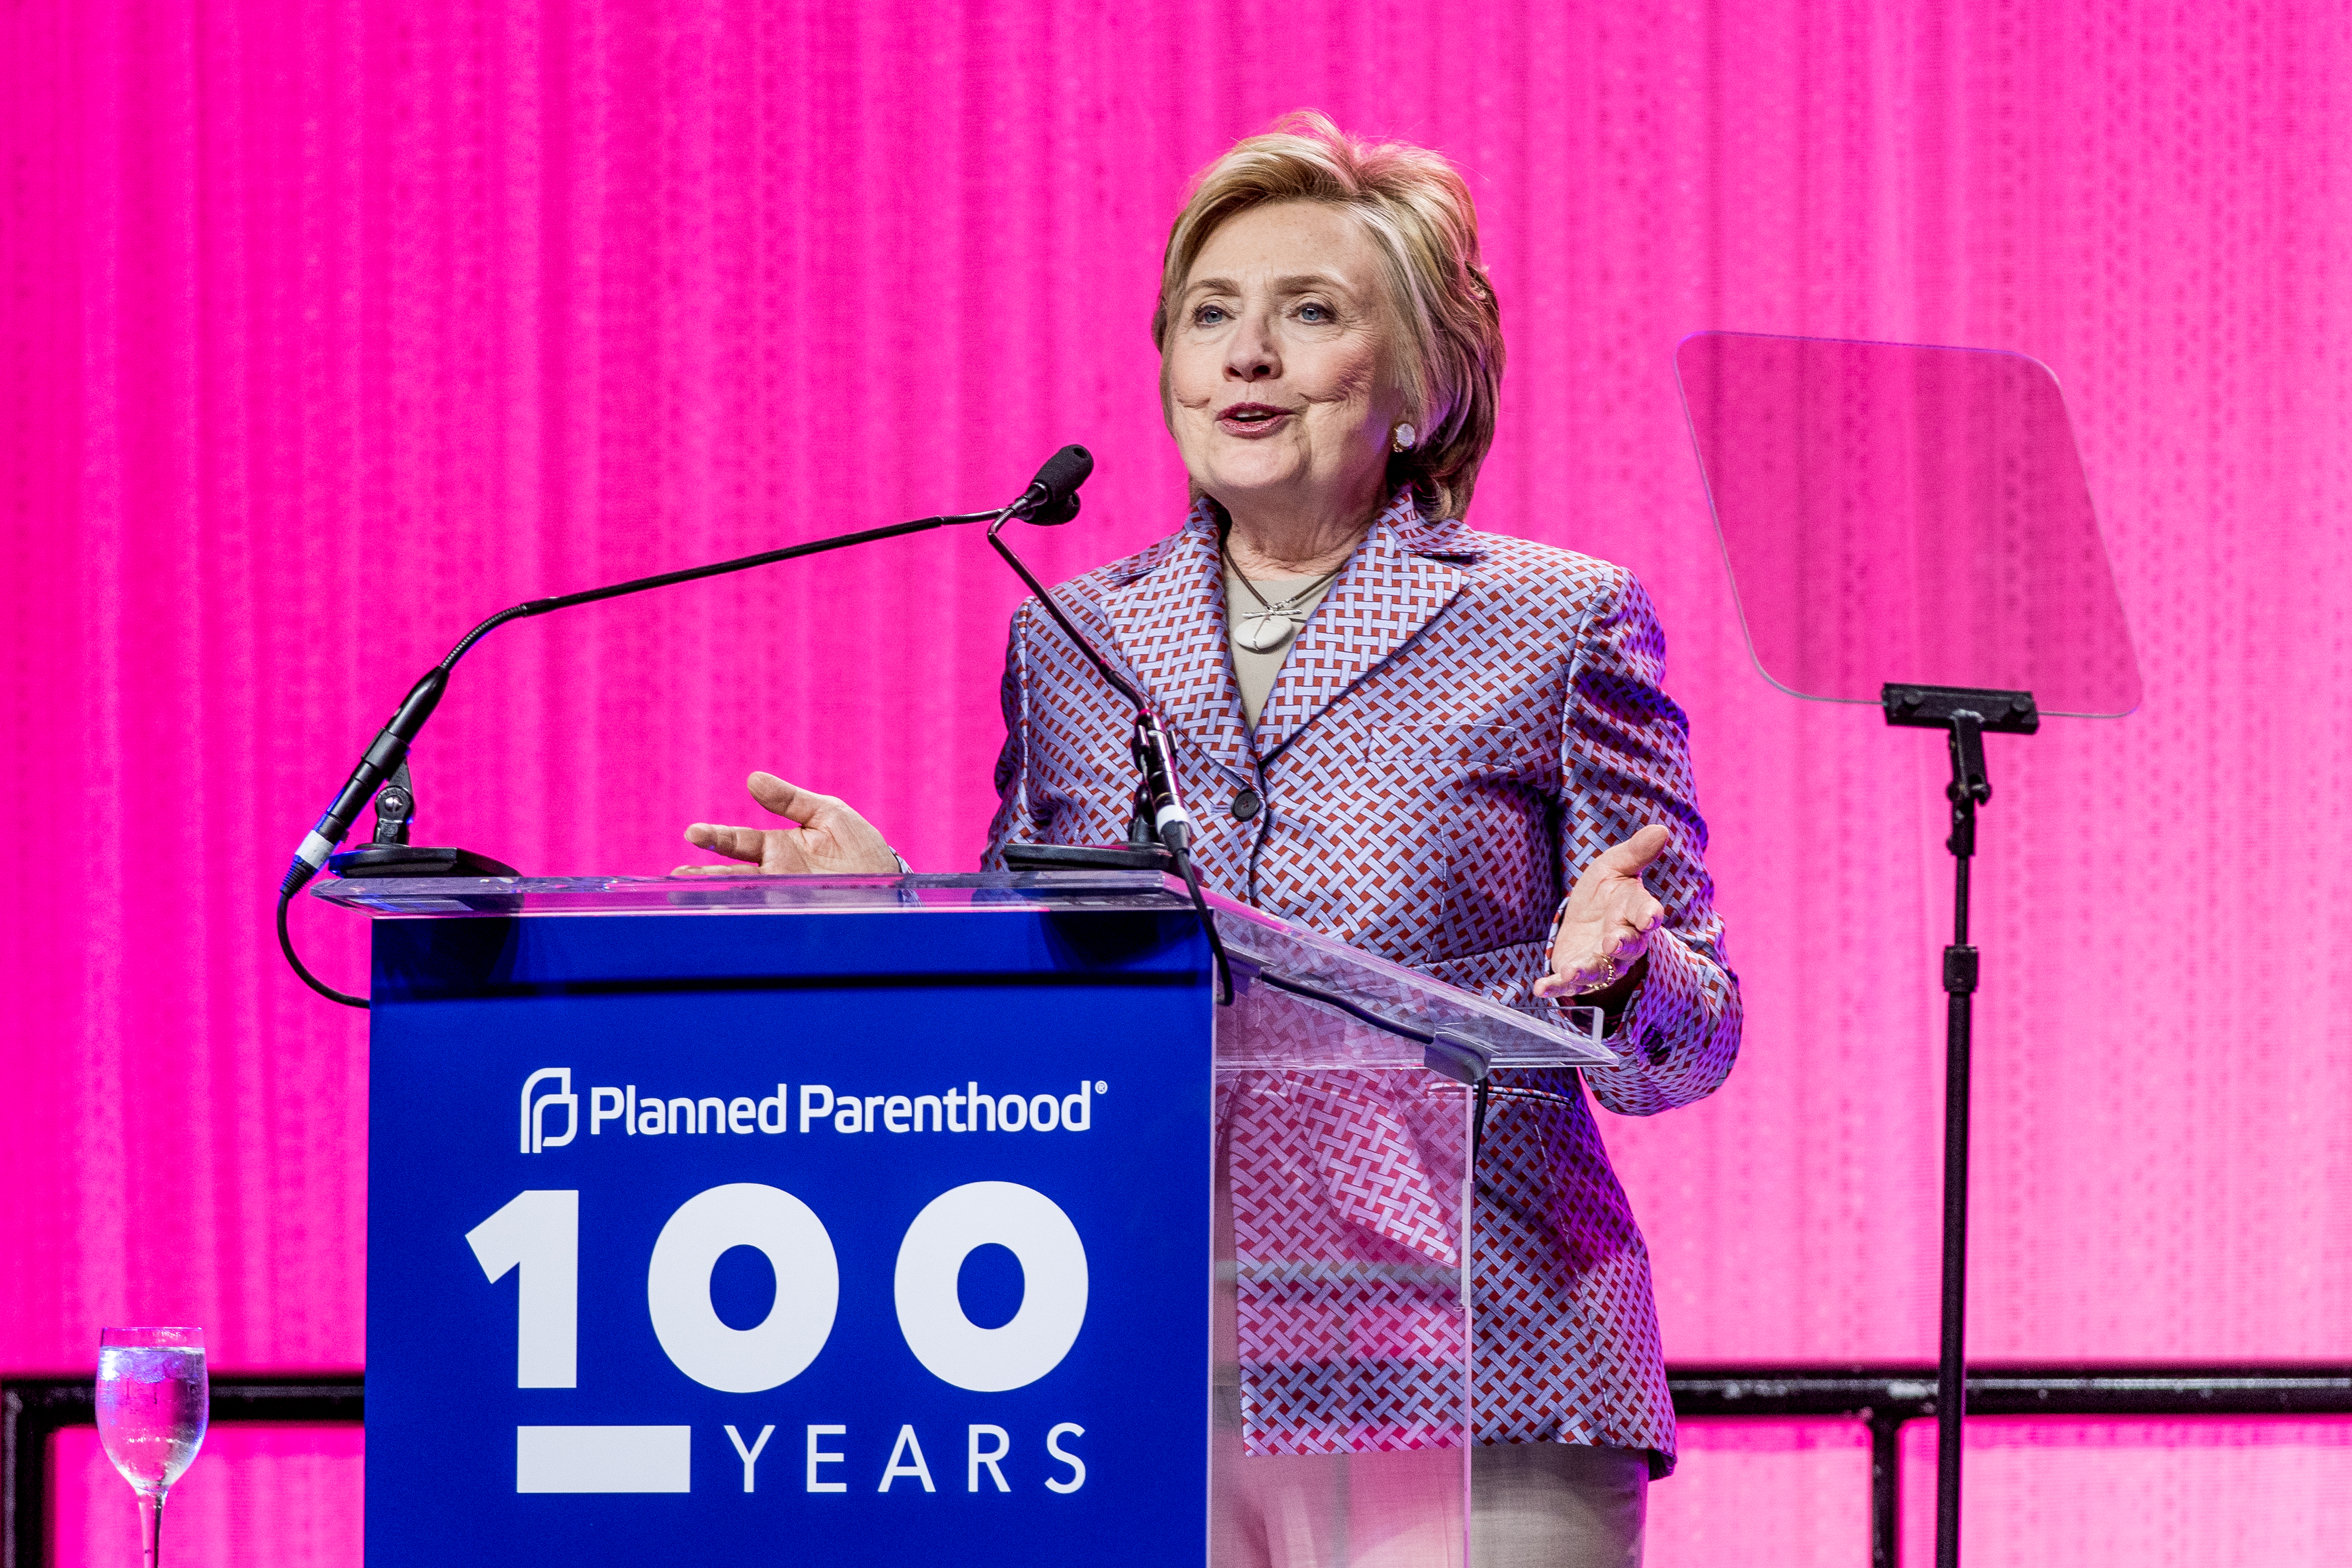 NEW YORK, NY - MAY 02:  Ex Presidential nominee Hillary Clinton speaks during the Planned Parenthood 100th Anniversary Gala at Pier 36 on May 2, 2017 in New York City.  (Photo by Roy Rochlin/FilmMagic)